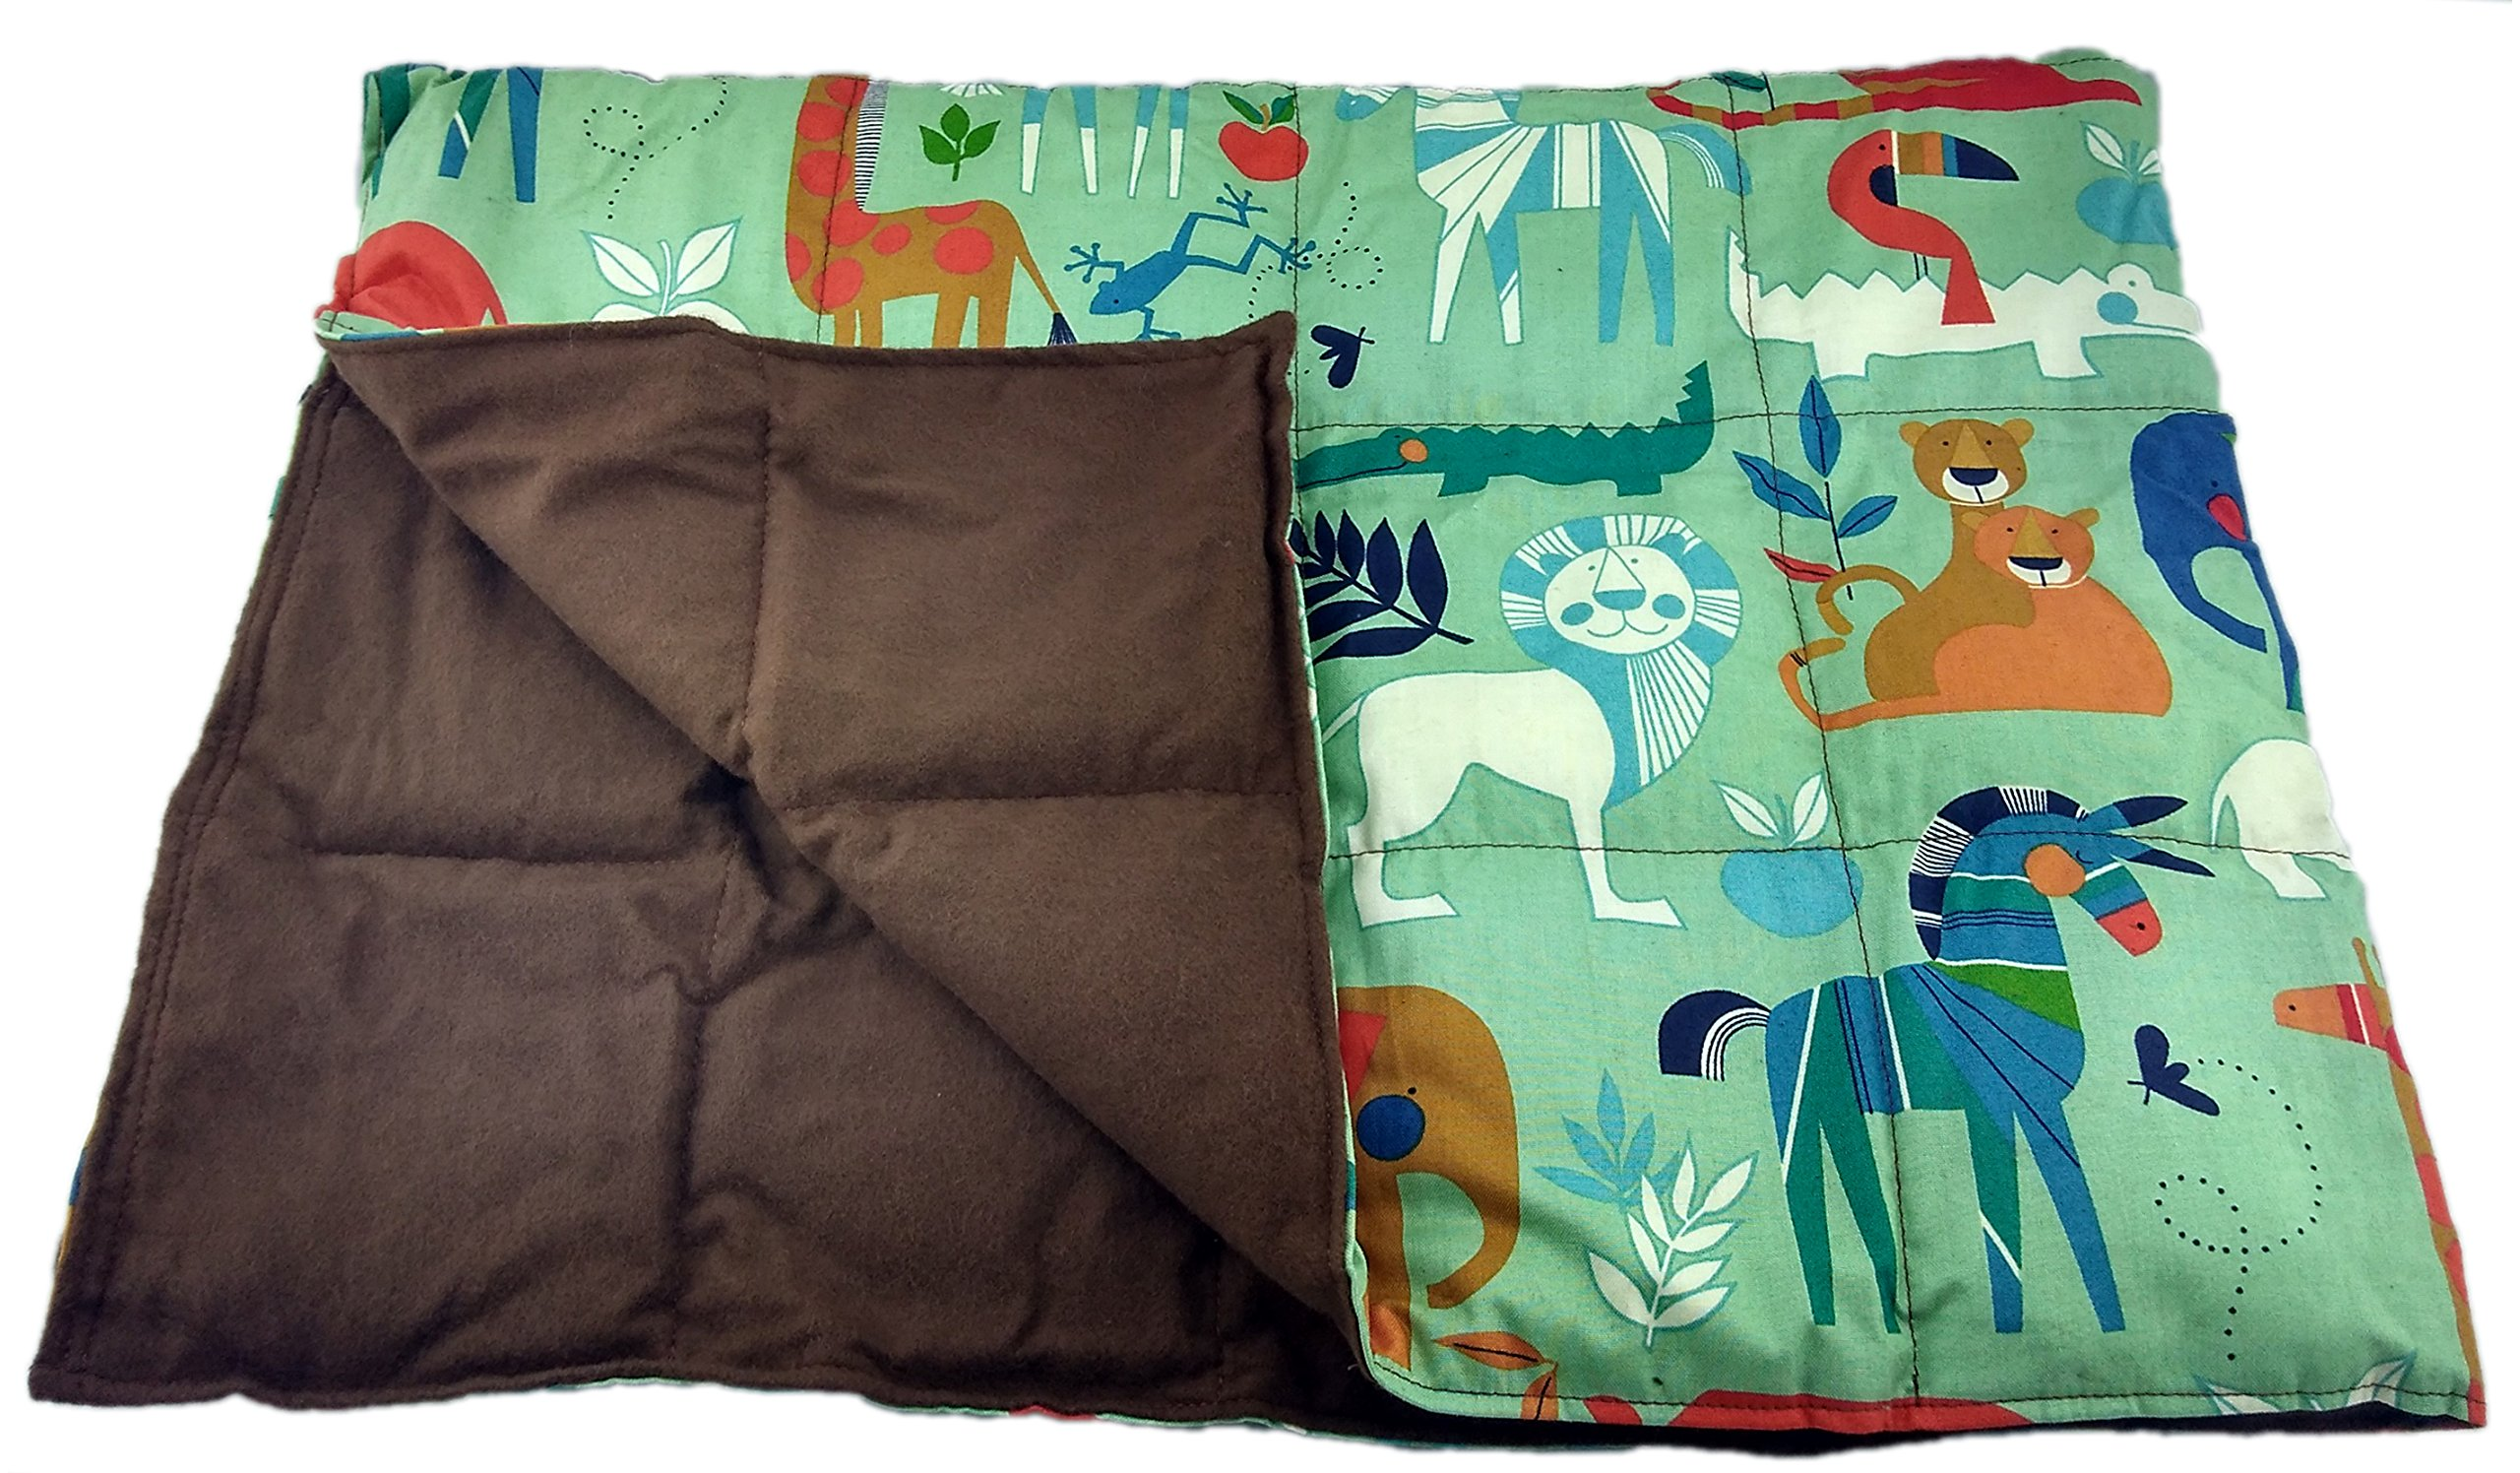 Grampa's Garden 10 LB Weighted Blanket - Zoo Animals - Premium Weighted Washable Body Blanket